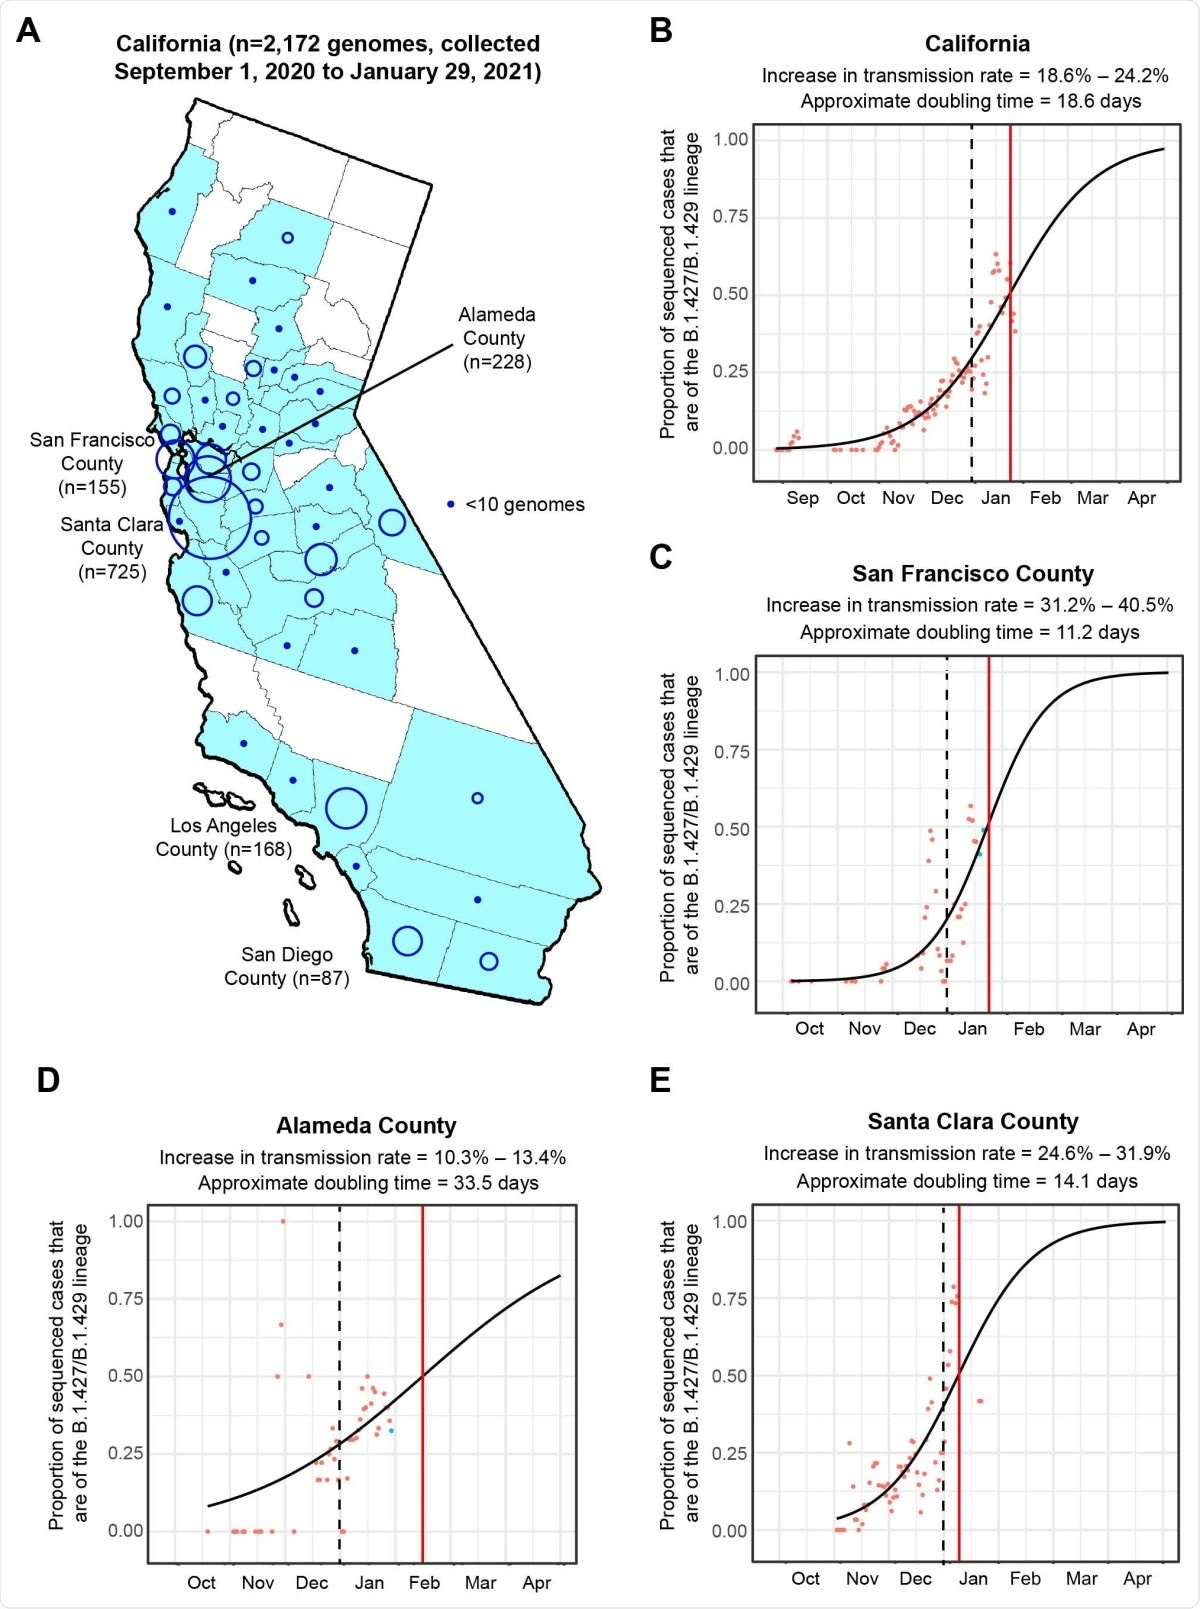 Increasing frequency of the B.1.427/B.1.429 variant 304 in California from September 1. 2020 to January 29, 2021. (A) County-level representation of the 2,172 newly sequenced SARS-CoV-2 genomes in the current study. Counties from which at least 1 genome were sequenced are colored in sky blue. The size of the circle is proportionally to the number of genomes sequenced from each county, while points designate counties for fewer than 10 genomes were sequenced. Logistic growth curves fitting the 5-day rolling average of the estimated proportion of B.1.427/B.1.429 variant cases in (B) California, (C) San Francisco County, (D) Alameda County, and (E) Santa Clara County. The predicted time when the growth curve crosses 0.5 is indicated by a vertical red line. A vertical black dotted line denotes the transition from 2020 to 2021. The increase in transmission rate is defined as the change in the relative proportion of B.1.427/B.1.429 variant cases relative to circulating non-B.1.427/B.1.429 variant lineages as estimated from the logistic growth model (Volz et al., 2020; Washington et al., 2021).